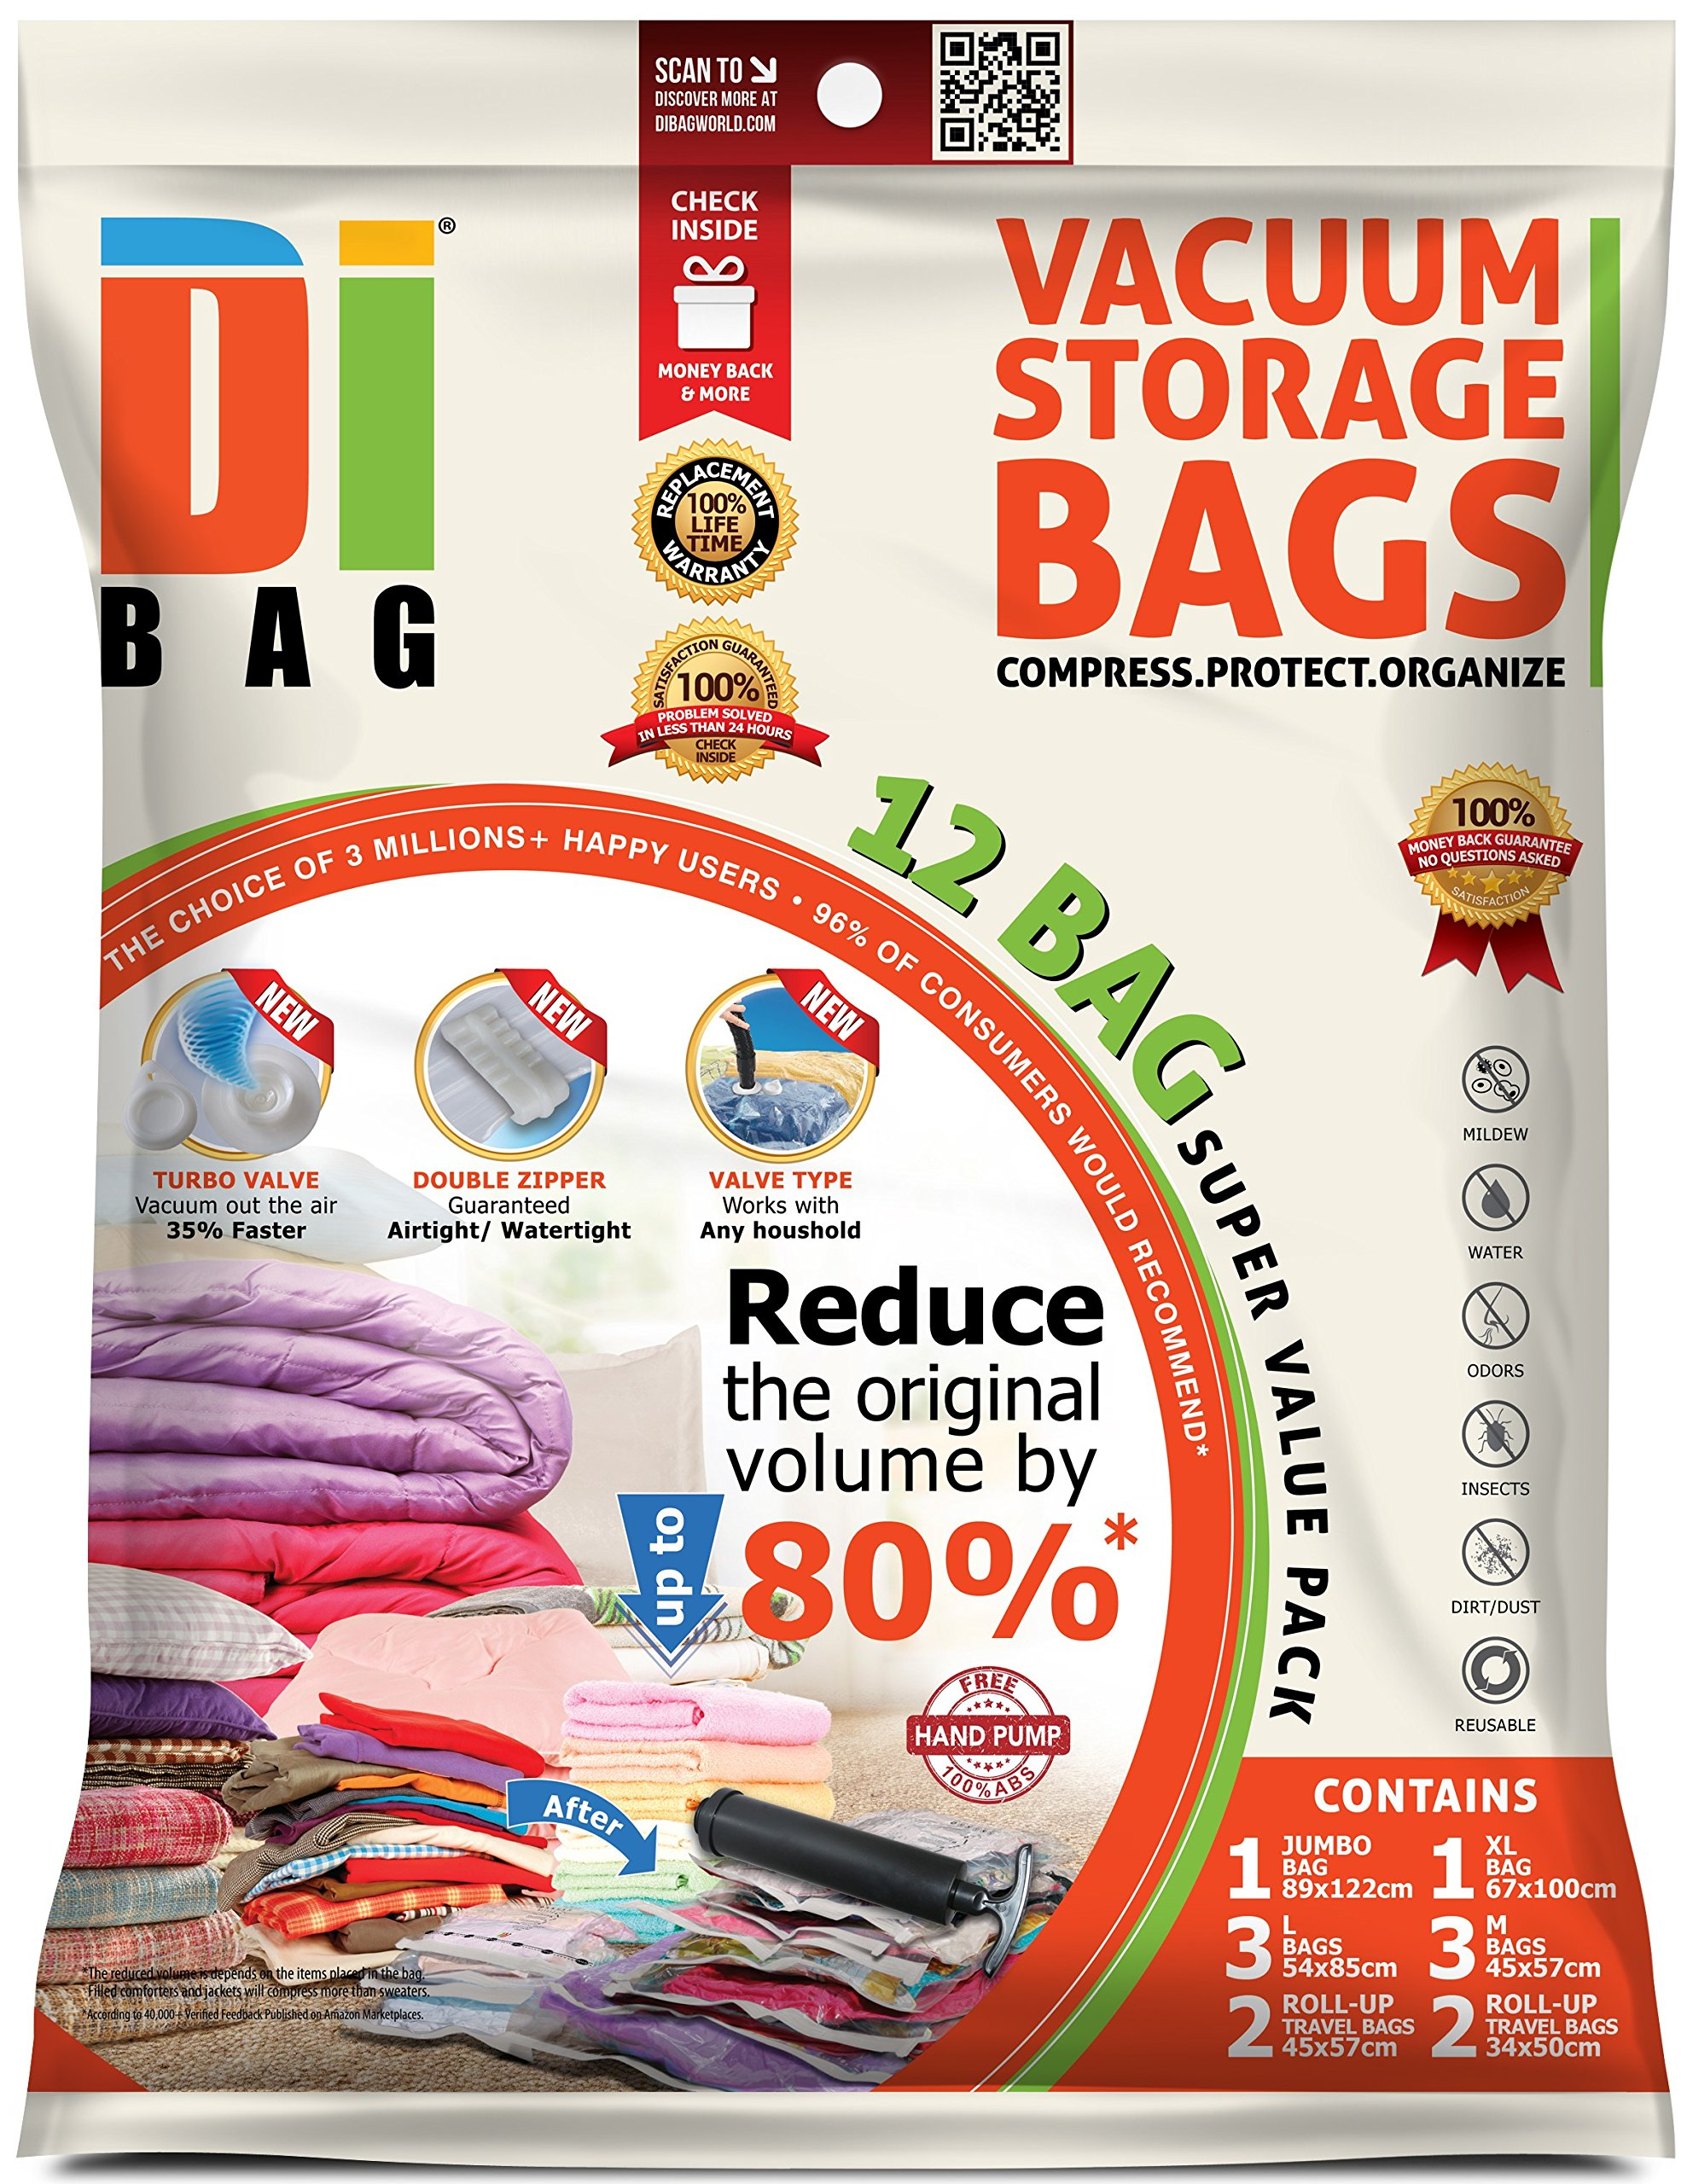 DIBAG ® 12 Bags Pack - Vacuum Storage Space Saver Bags. 1 Jumbo (48''X35'') (122X89 cm)+ 1 XL (39.37''X26.37'') (100X67 cm) + 3 Large (33.46''X21.25'') (85X54 cm) +3 Medium (22.44''X17.71'') (57X45 cm) + 2 Suitcase Travel Roll-up Bags (22.44''X17.71'') (57X45 cm) Without Suction or Valve + 2